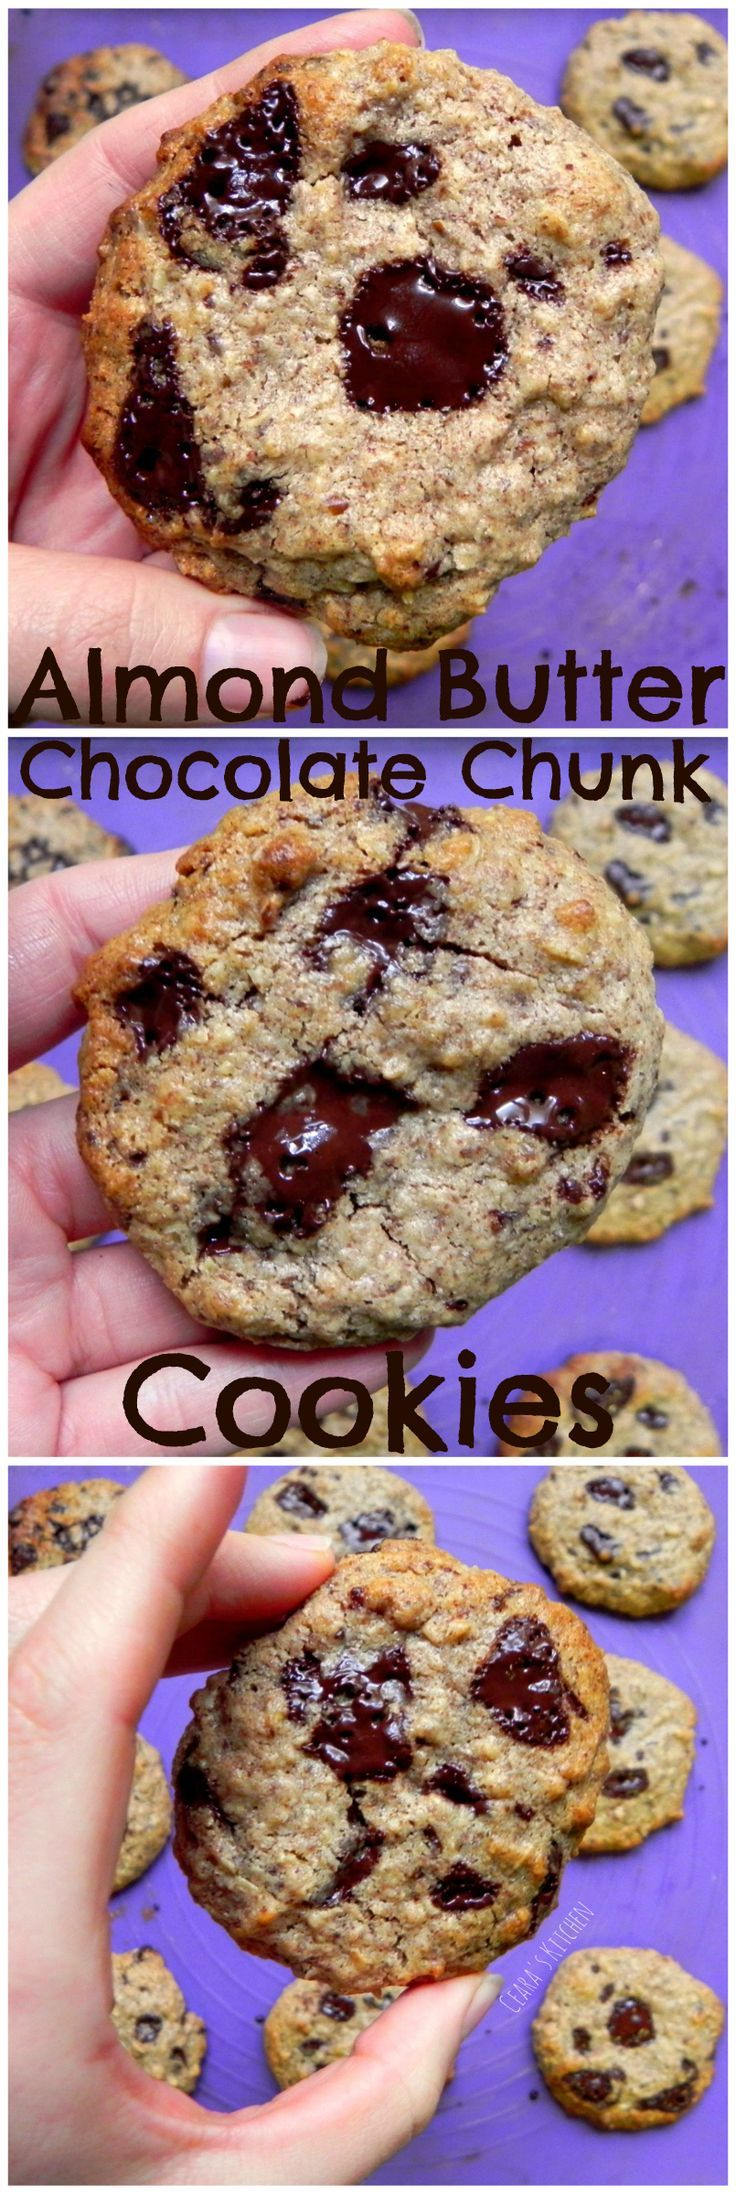 Flourless Almond Butter Chocolate Chunk Cookies - chewy & soft in the middle, crispy around the edges & filled with delicious chocolate chunks! Secretly #Healthy #Vegan & #Glutenfree - Ceara's Kitchen